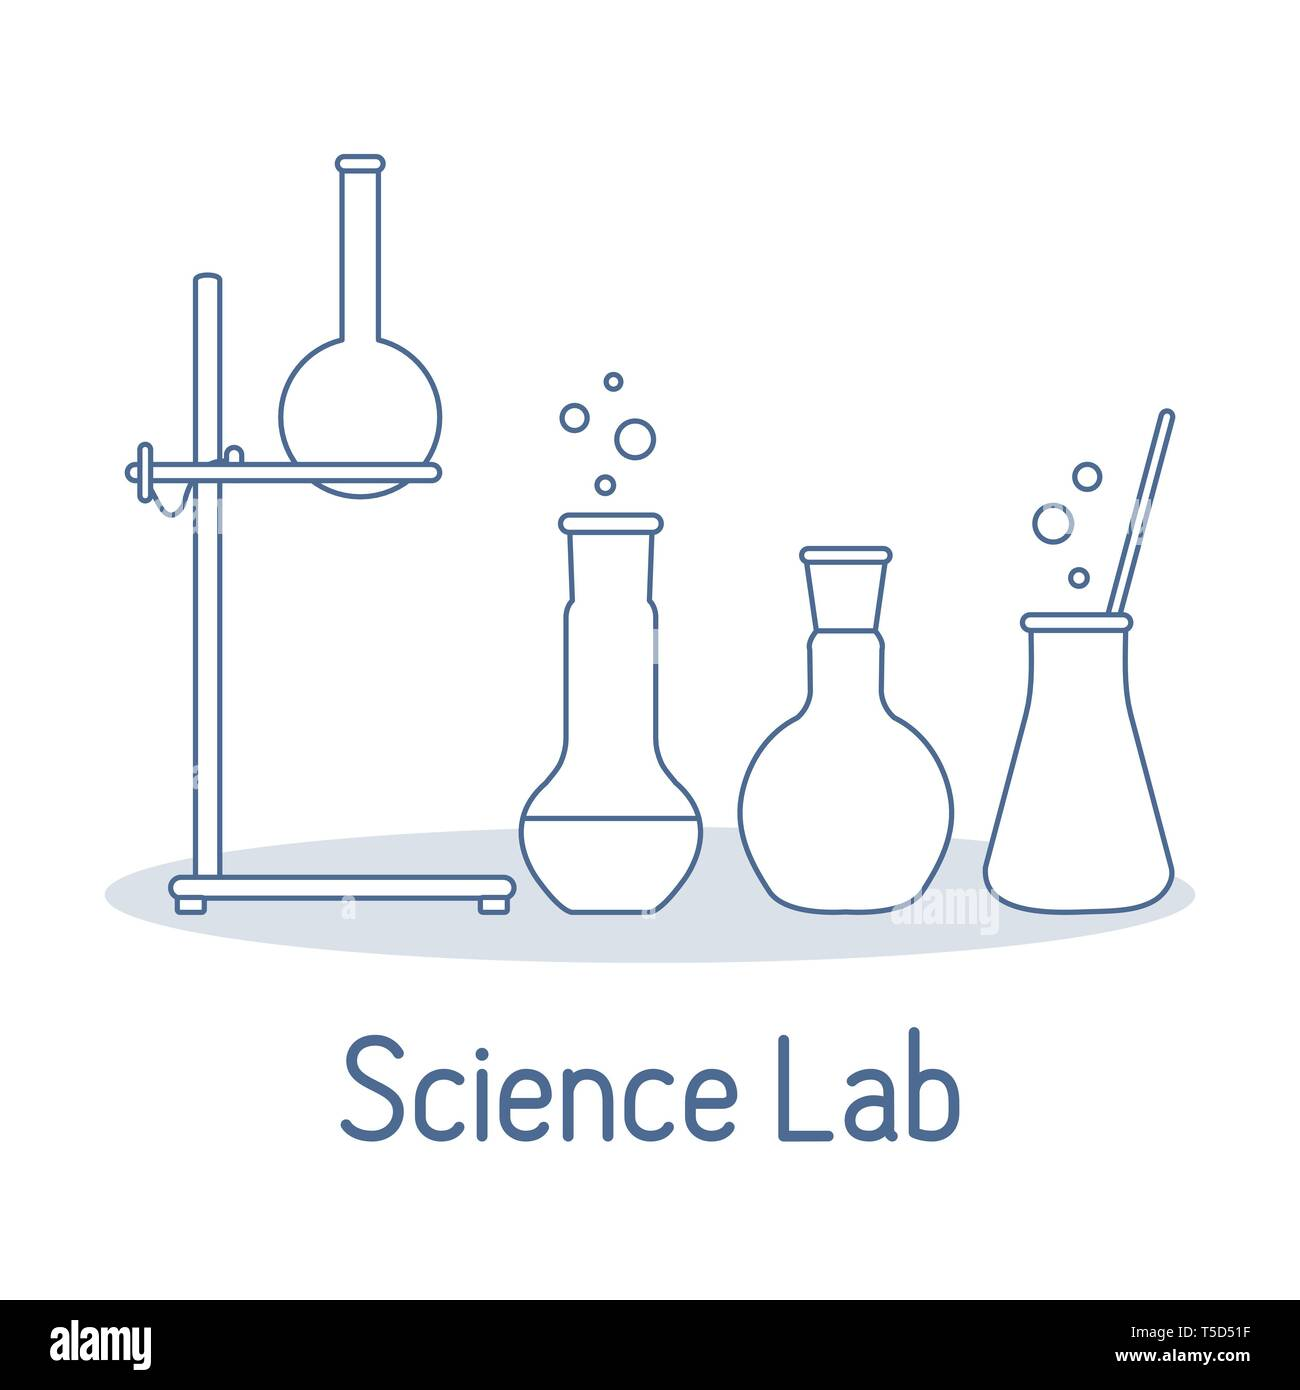 Vector science illustration with flasks, equipment stand. Laboratory equipment. Education elements. Chemistry, biology, medicine. Stock Vector